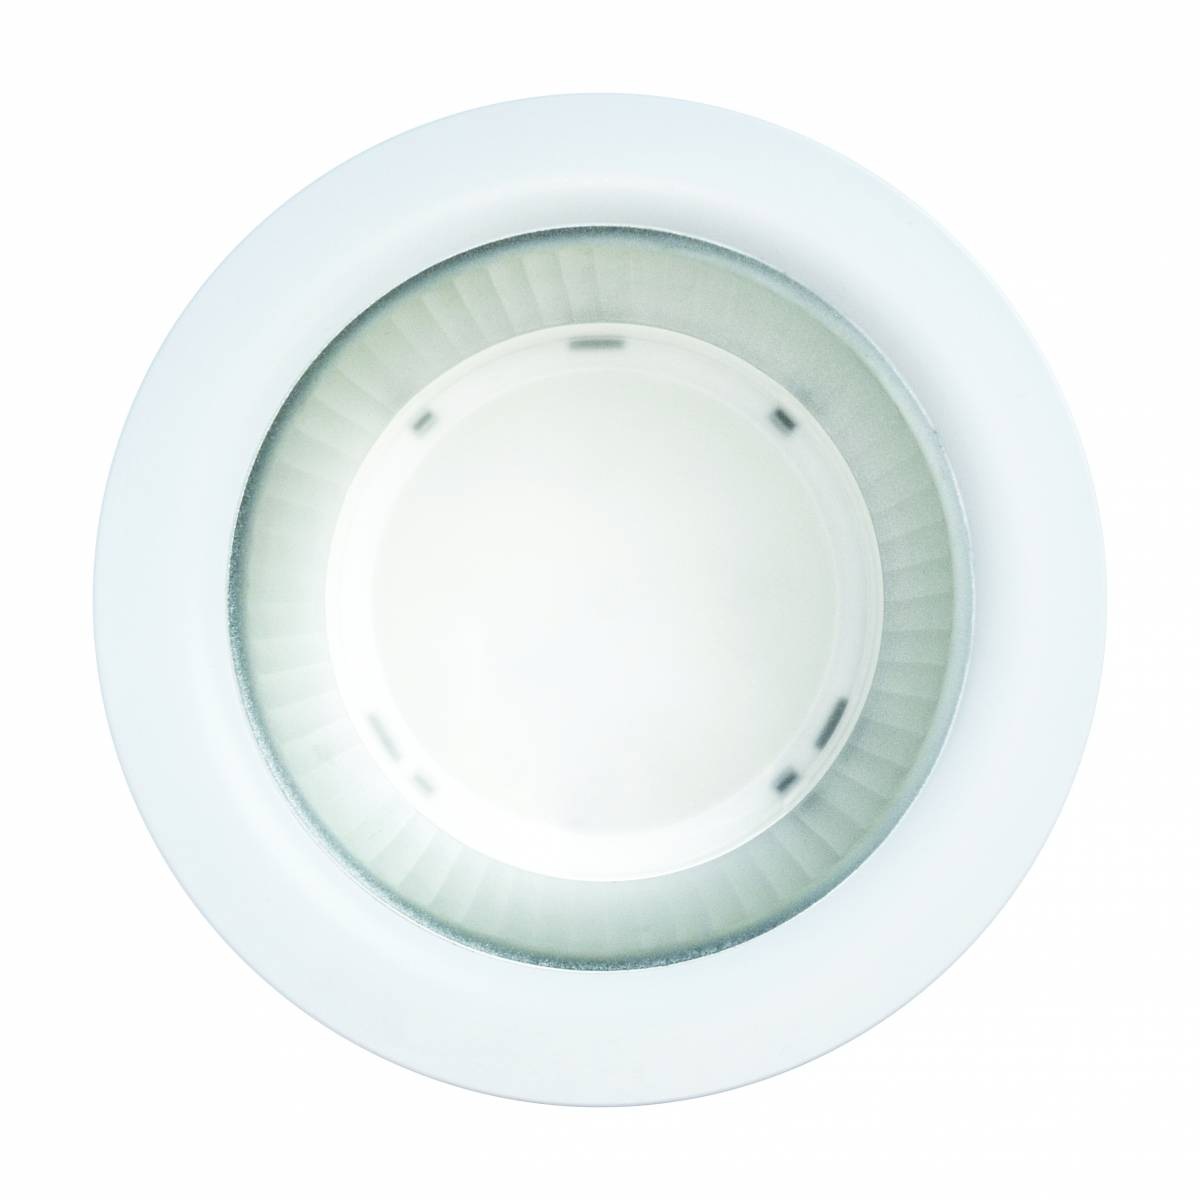 Segon M LED 170 ECO 20W 1800lm 840 ECG IP44  white